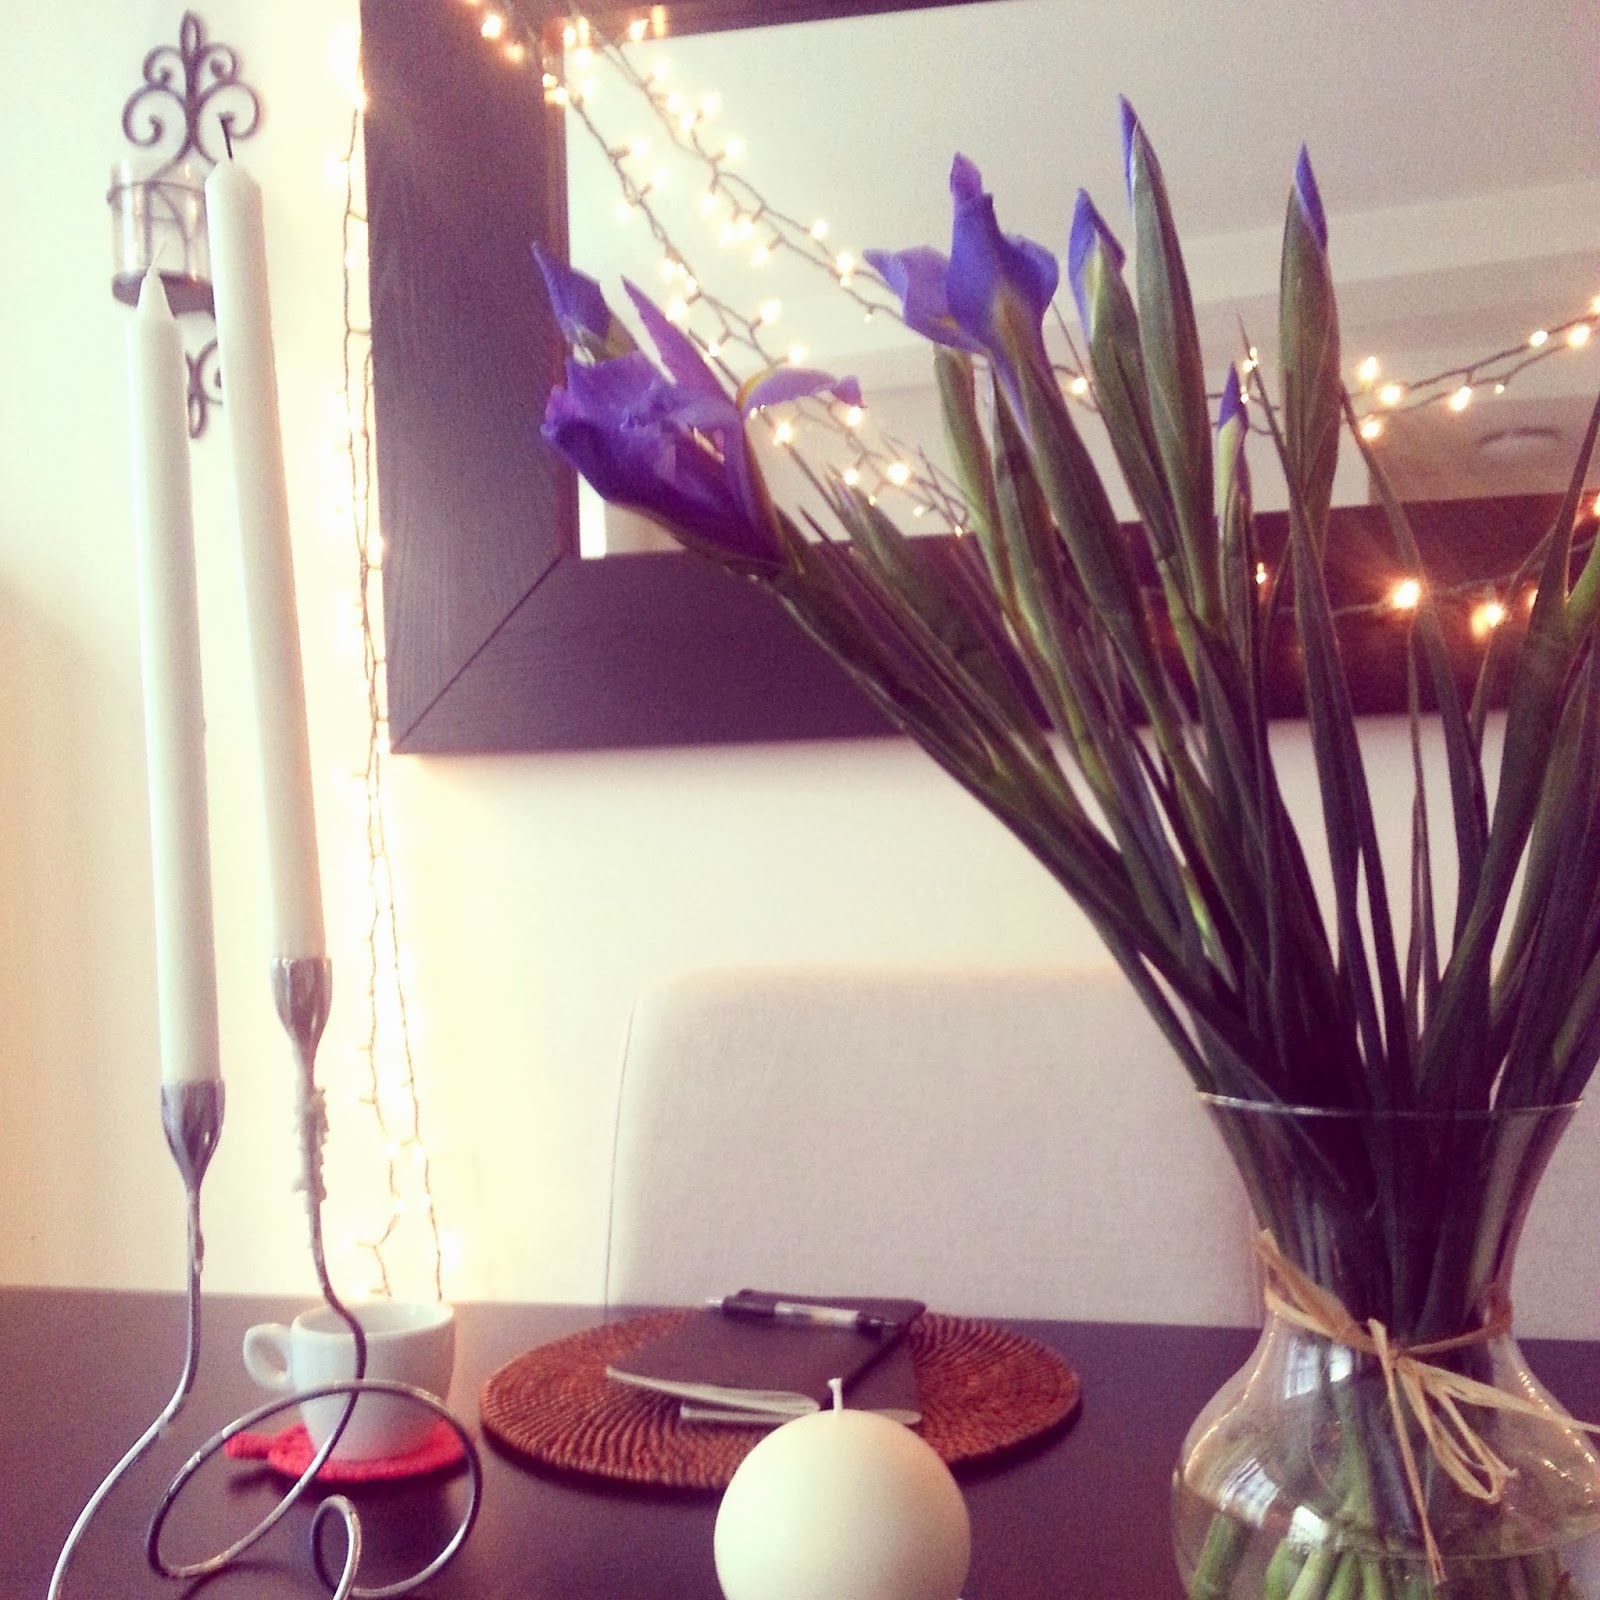 Morning meditations with notebook, irises, and teacup  |  The waiting game...and spilt milk on afeathery*nest  |  http://afeatherynest.blogspot.com